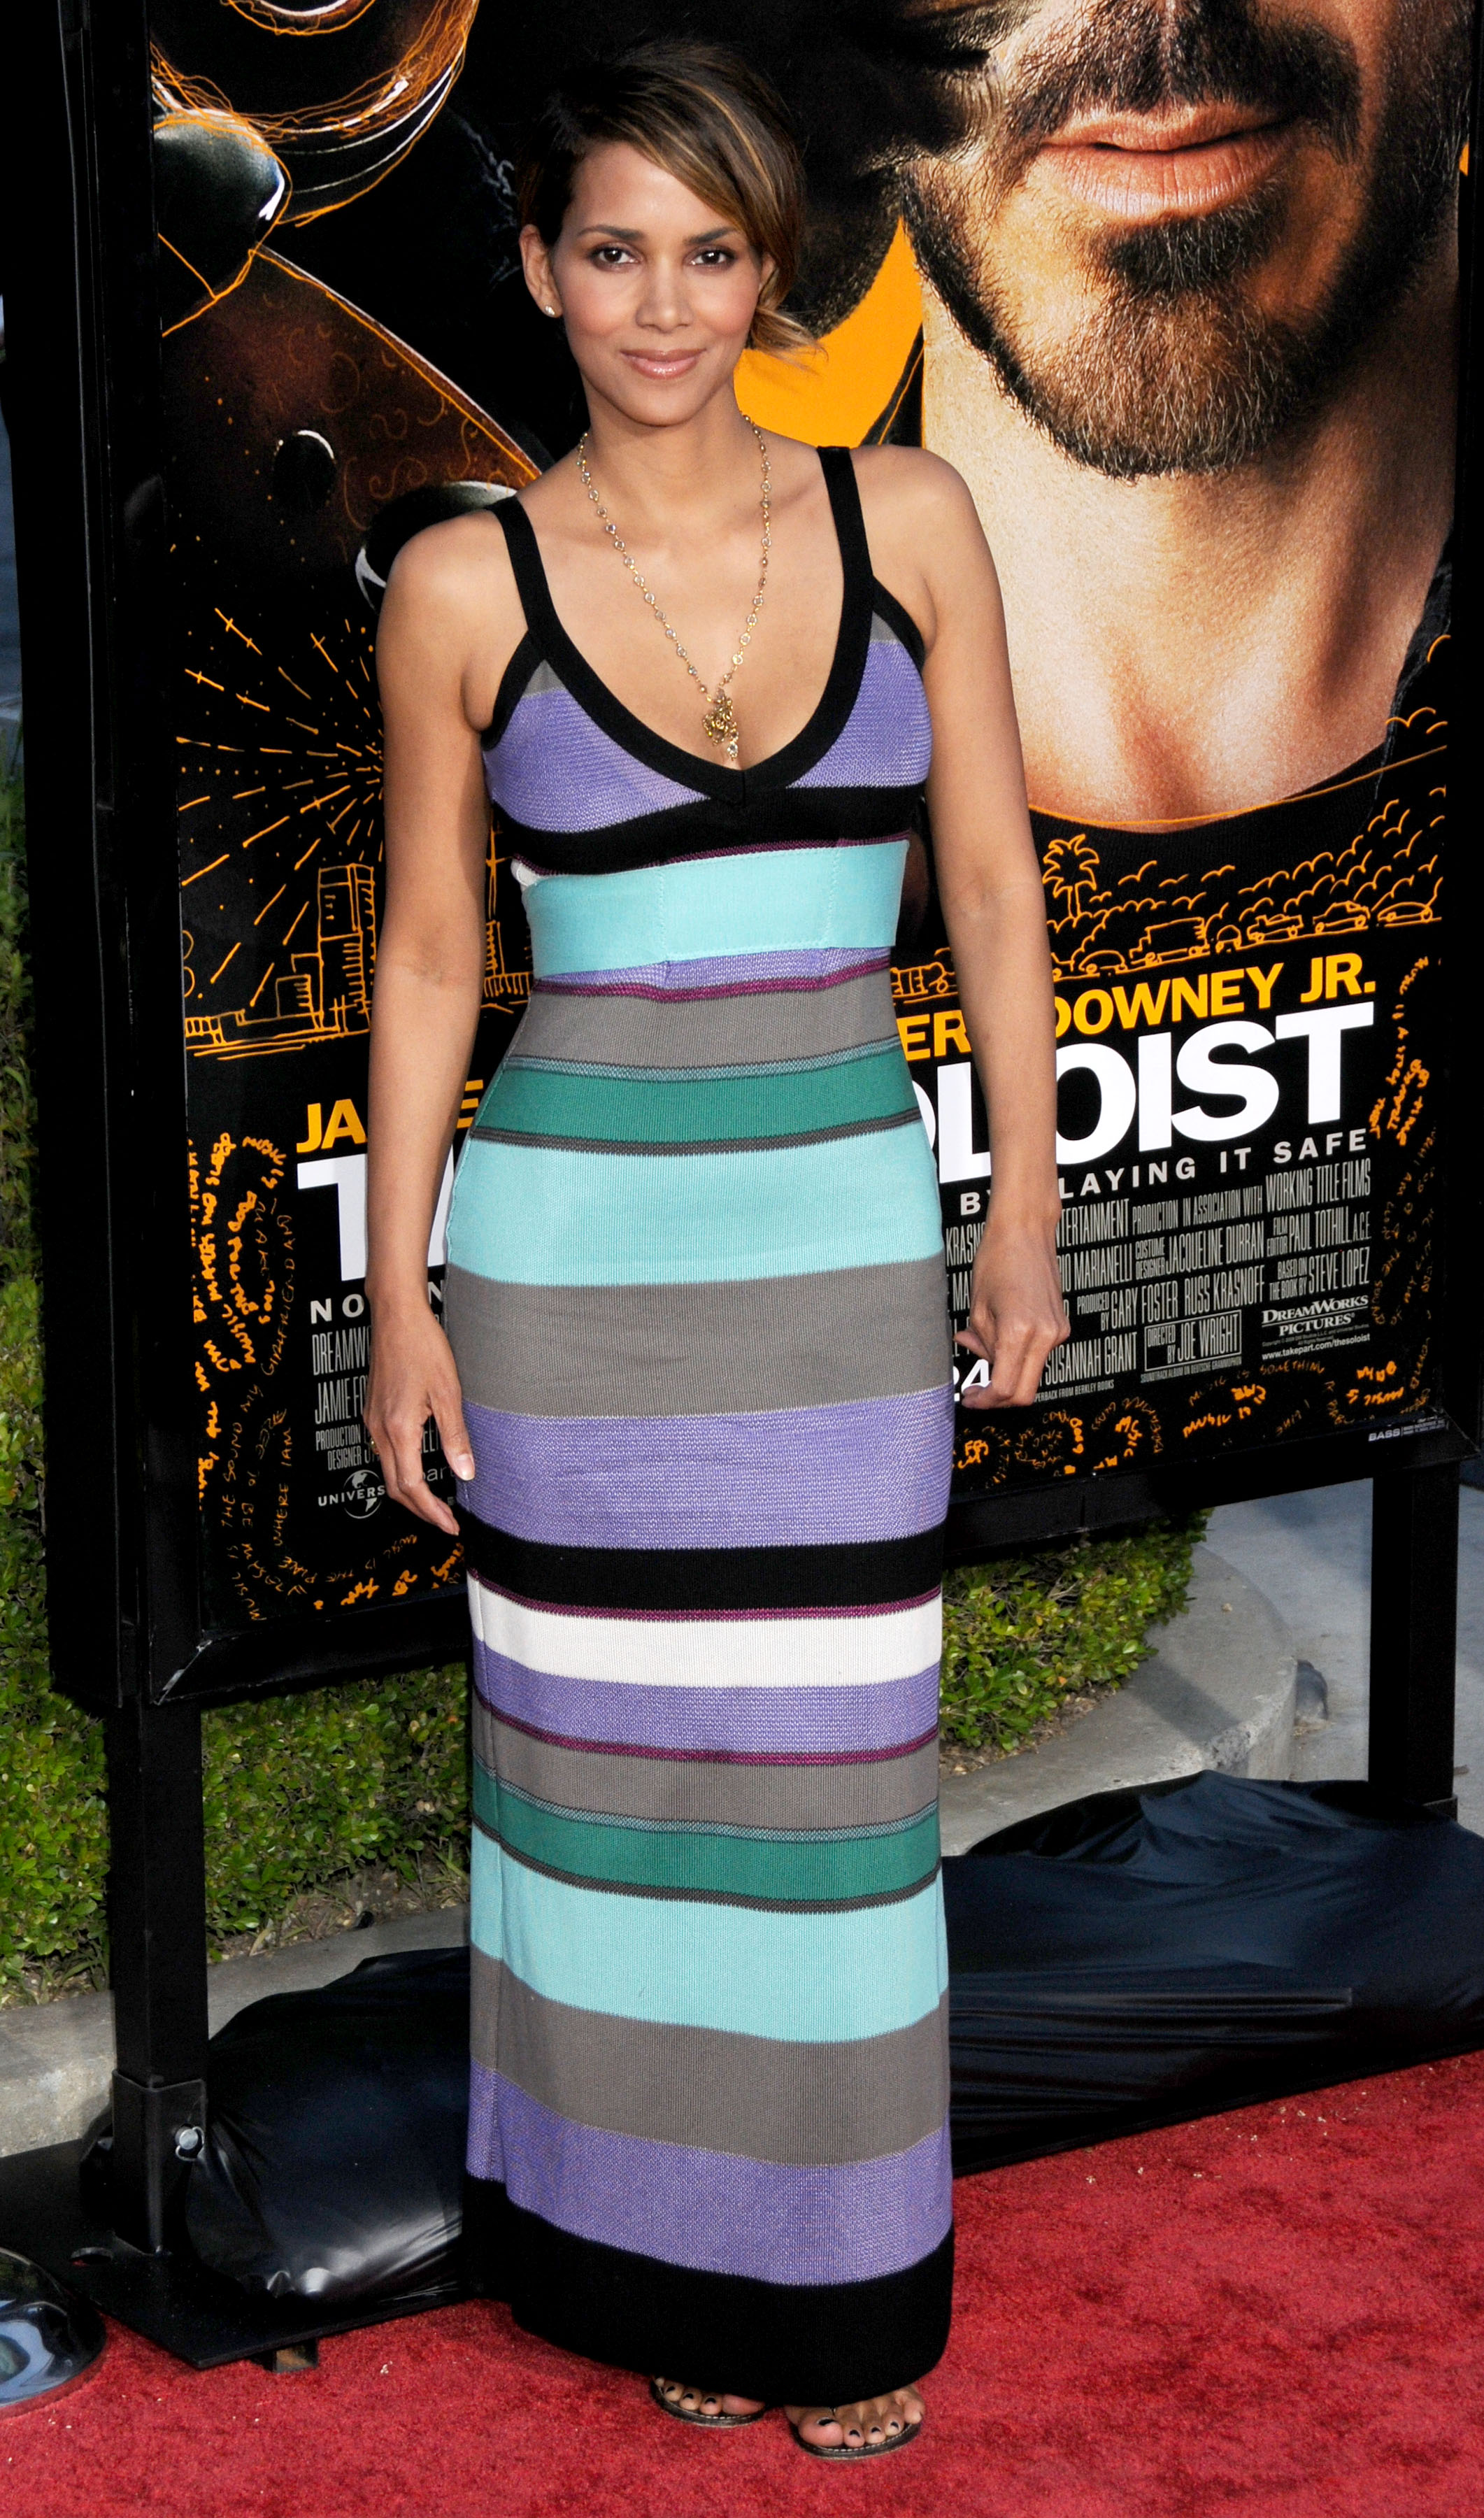 64694_Halle_Berry_The_Soloist_premiere_in_Los_Angeles_31_122_237lo.jpg